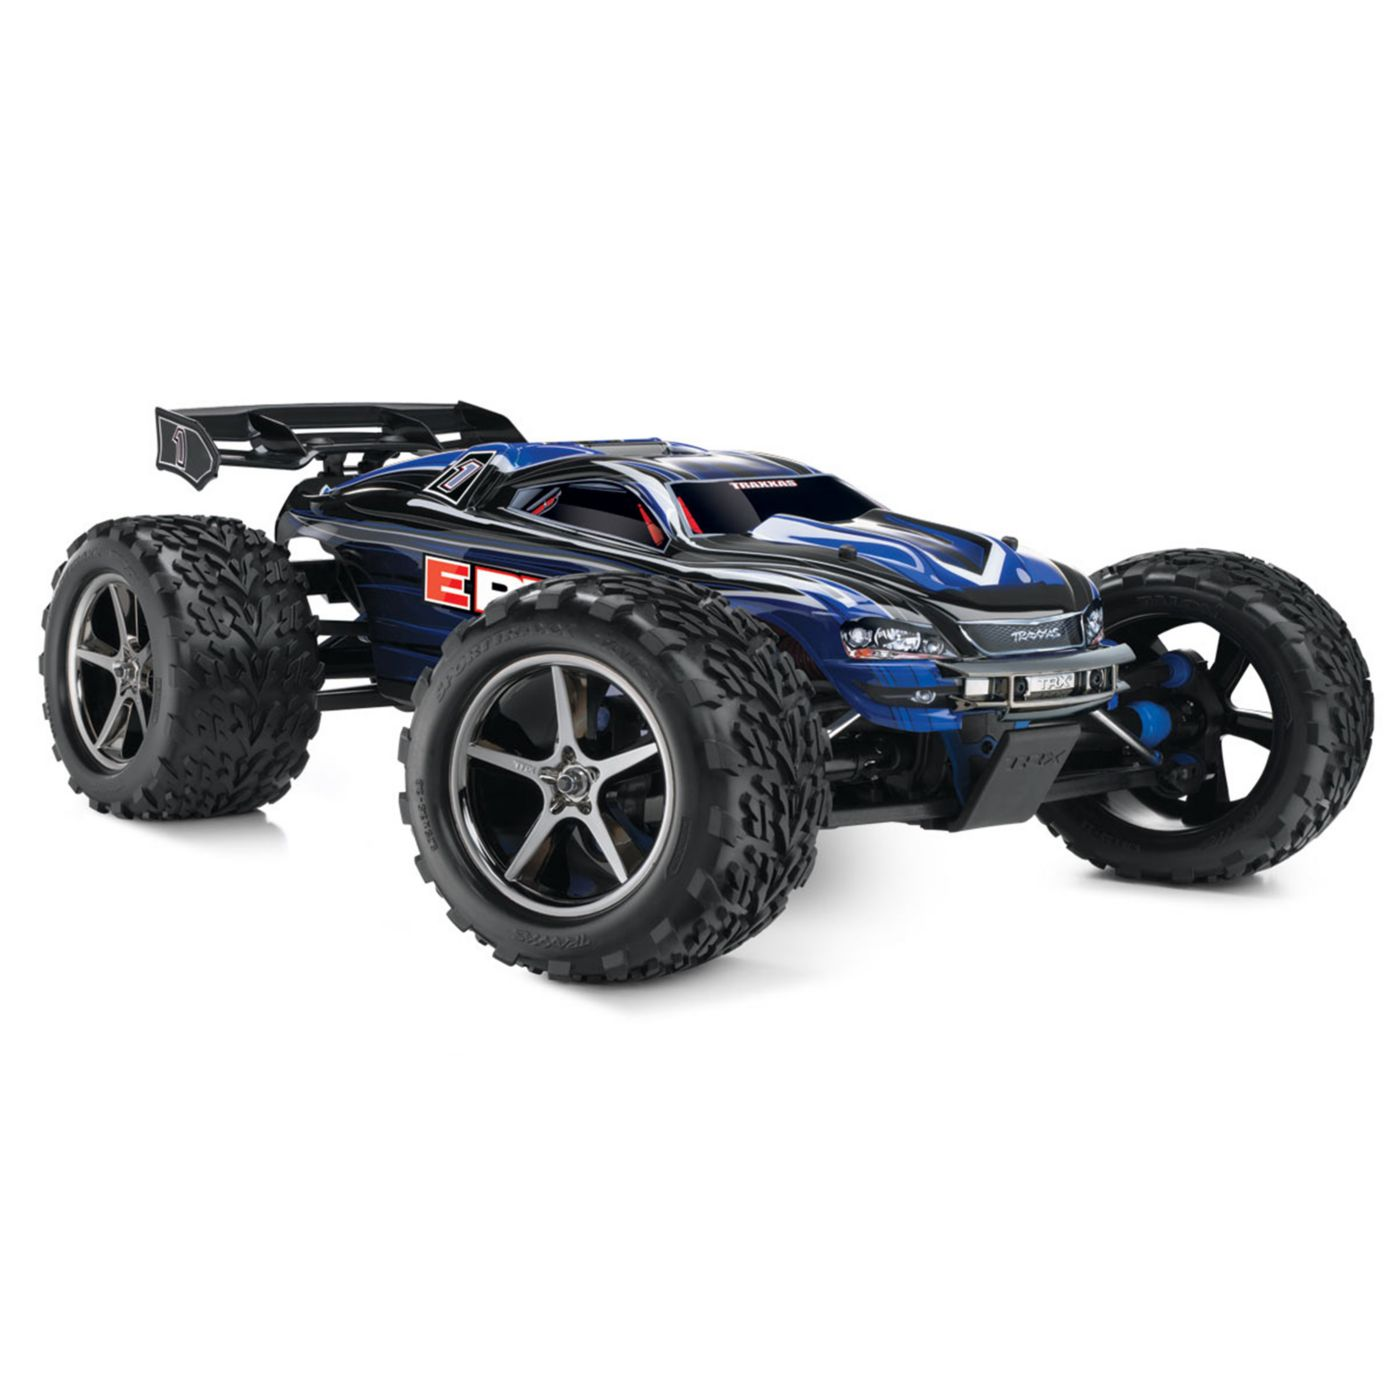 1/10 E-Revo 4WD Monster Truck Brushed RTR with TSM, Blue